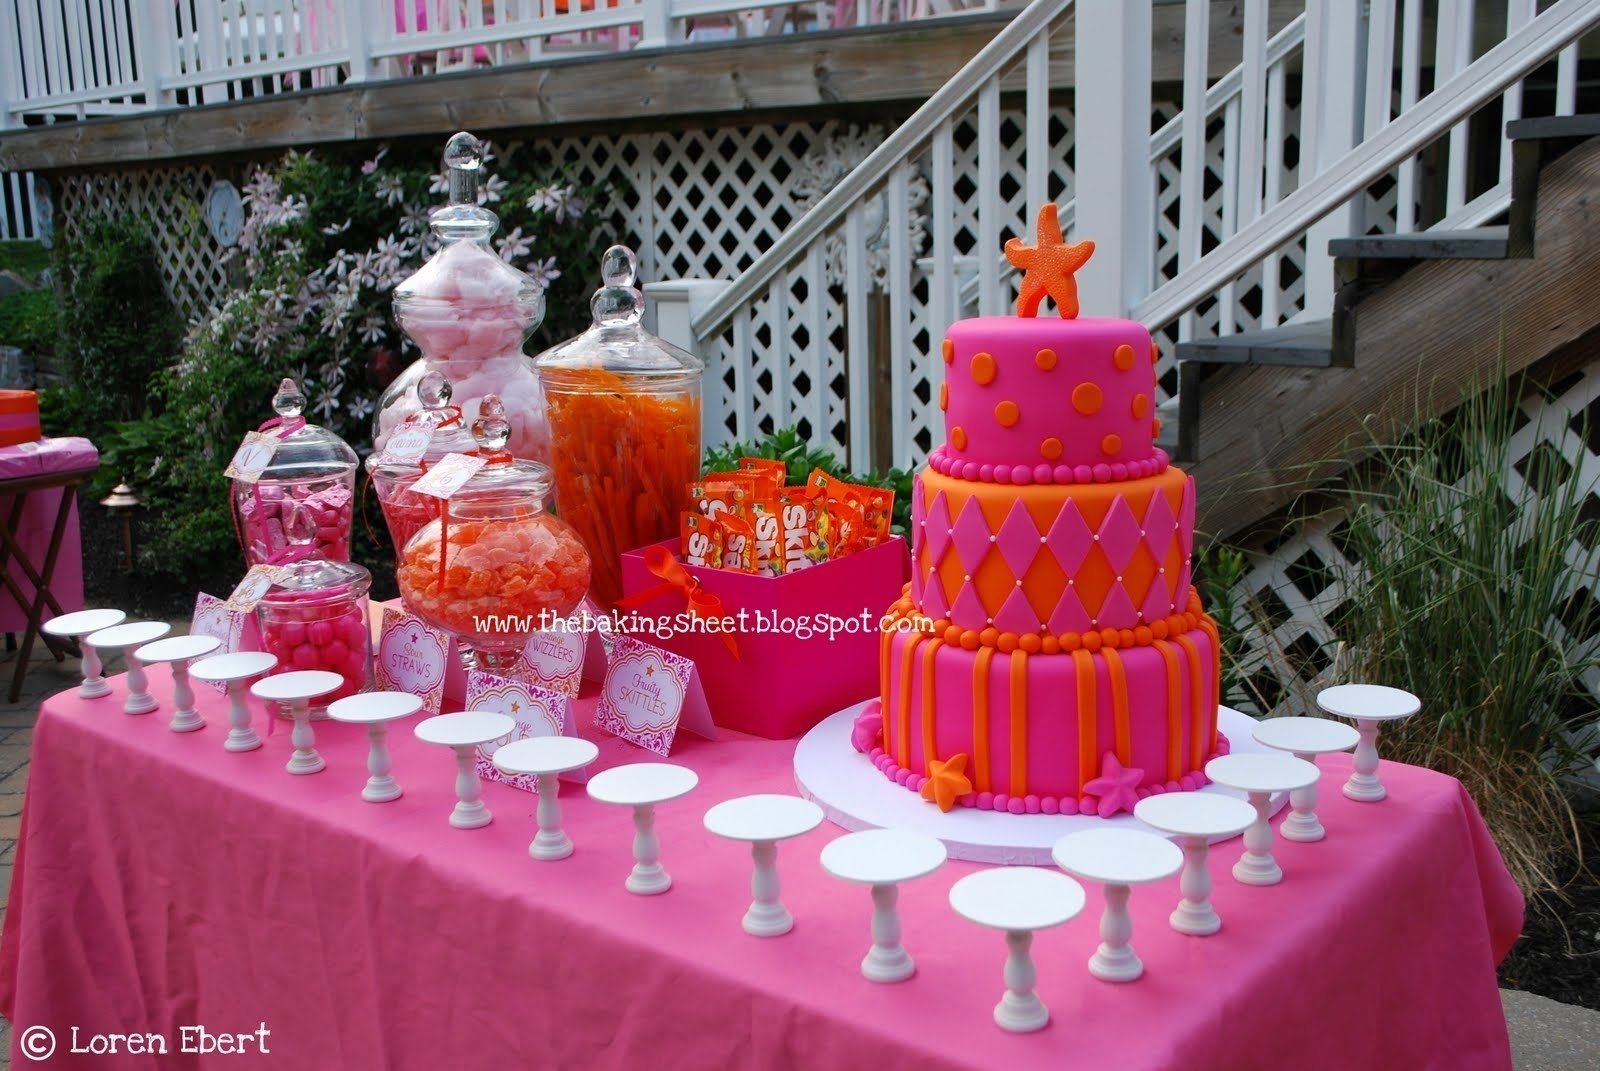 10 Unique Sweet 16 Party Theme Ideas sweet 16 party theme for summer tiffany summer splash pool party 2020